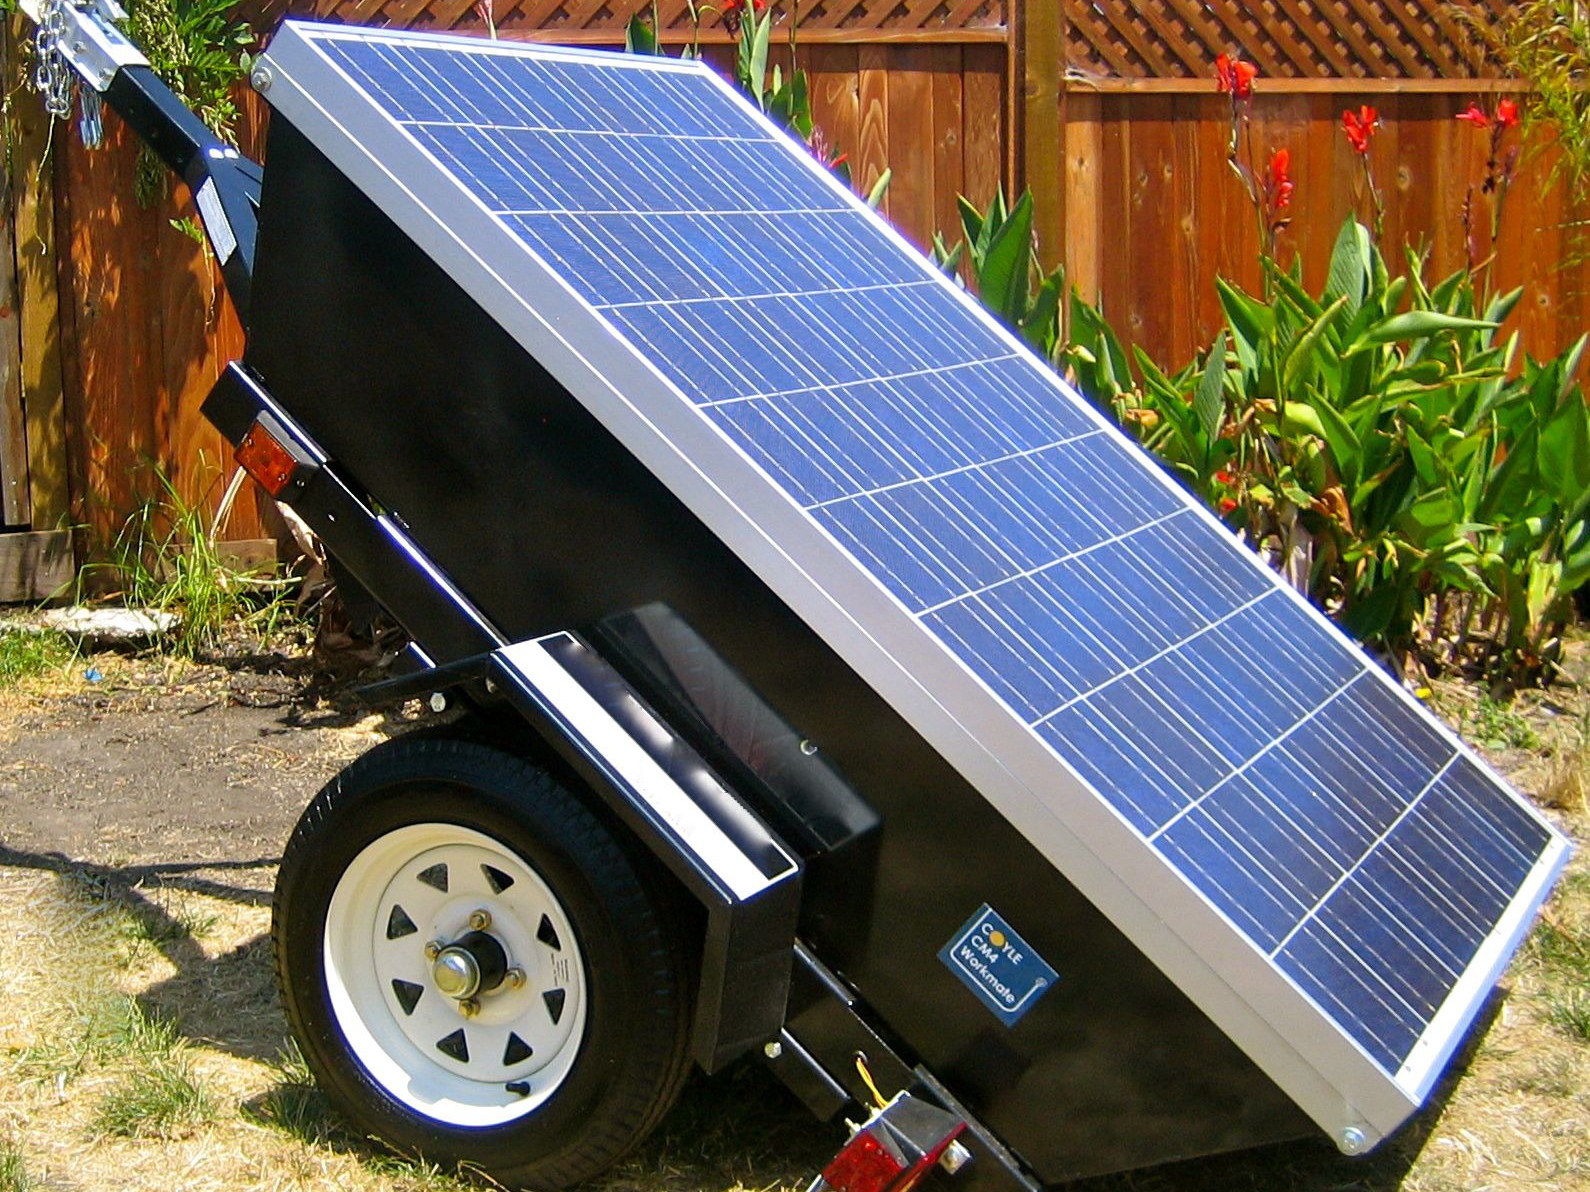 Photovoltaic System Wikipedia Solar Panels To Batteries Via Regulator Profile Picture Of A Mobile Powered Generator